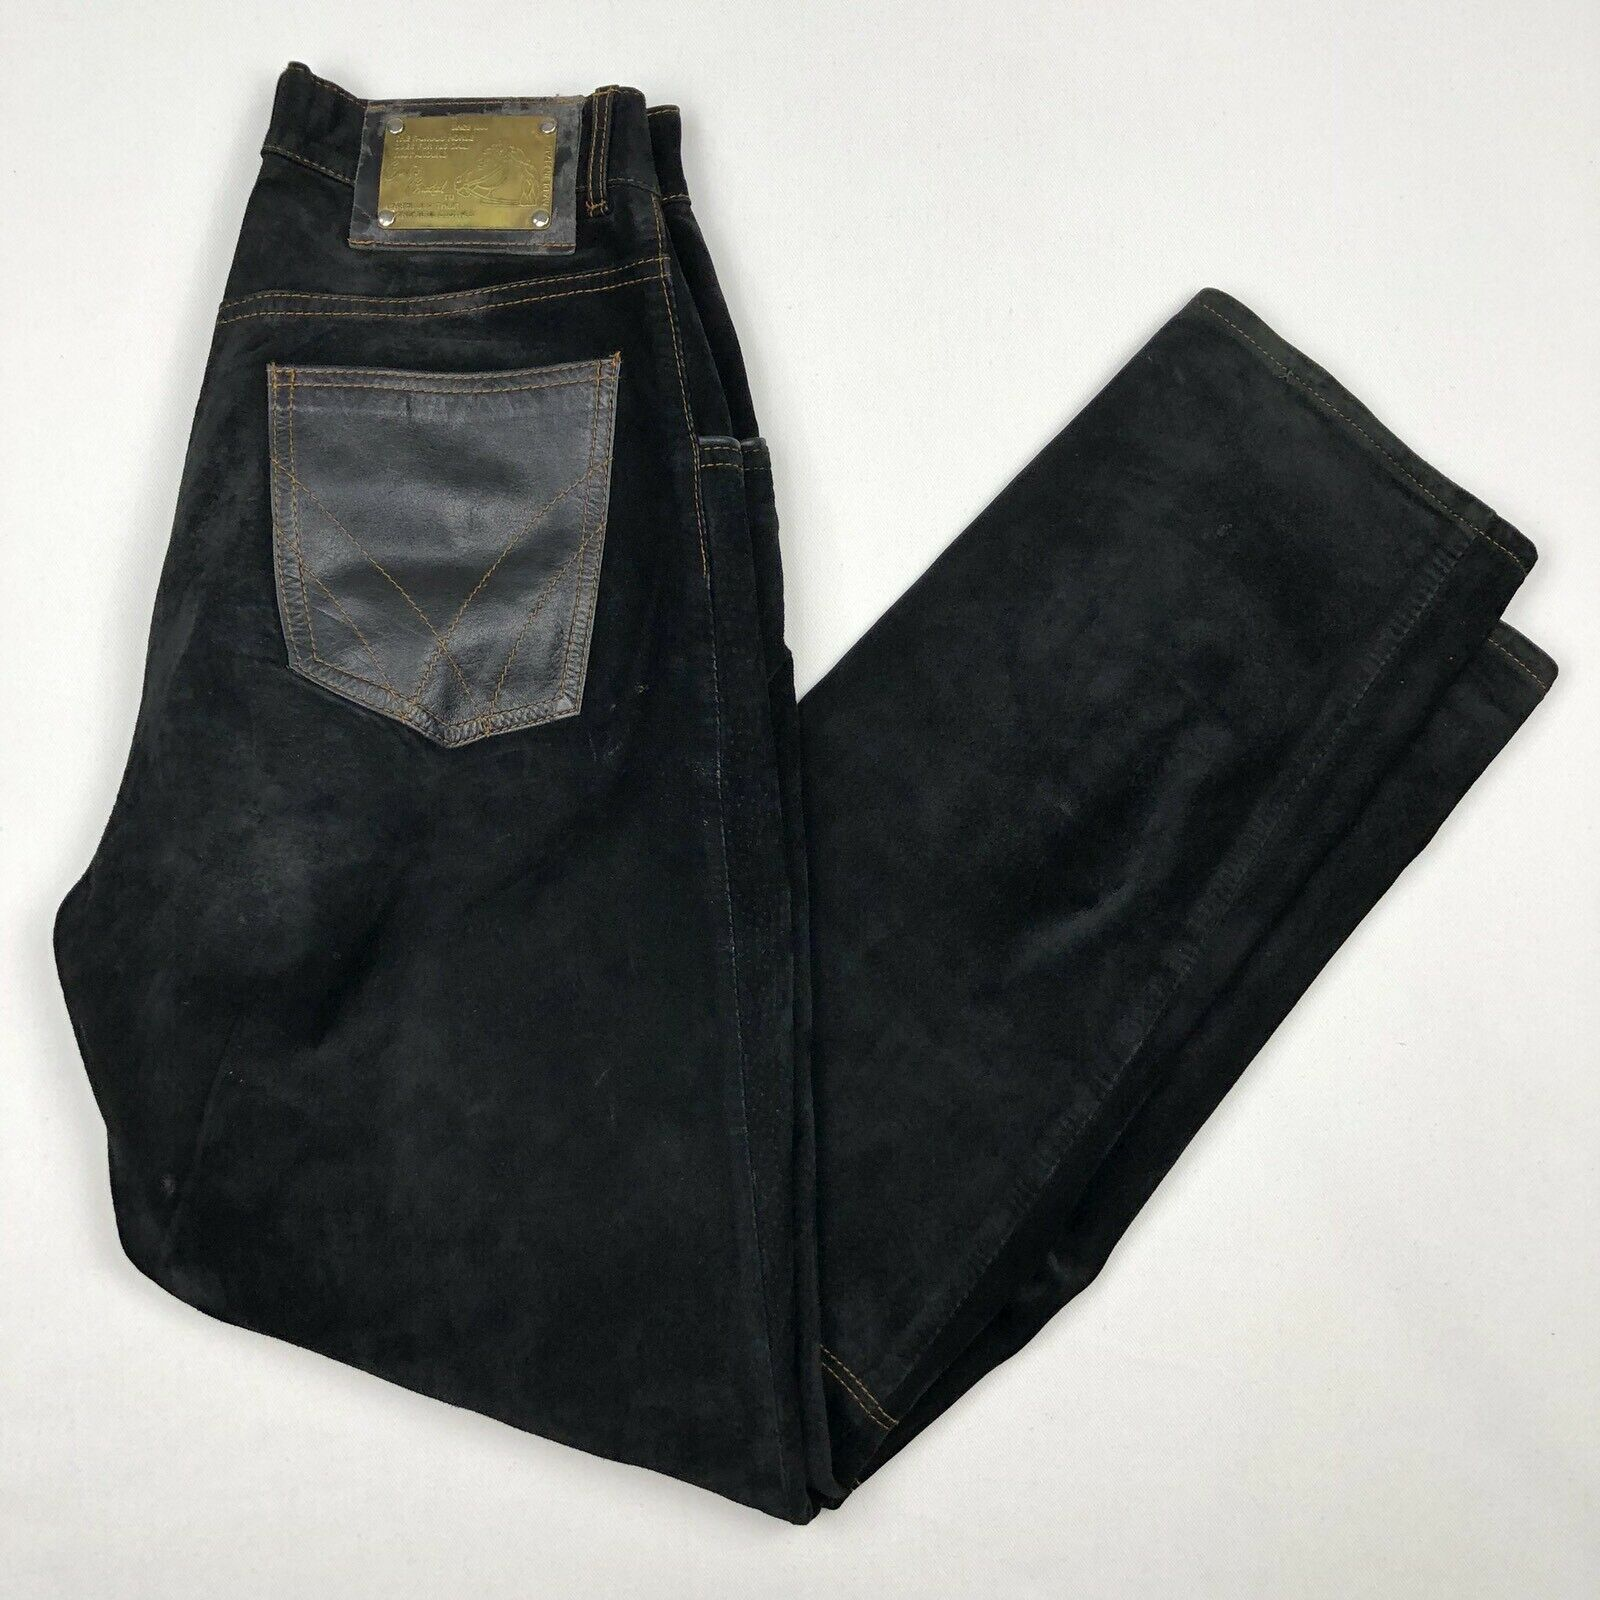 Centro Ciudad Leather Suede Equestrian Riding Pants • RARE • Spain • Size 38